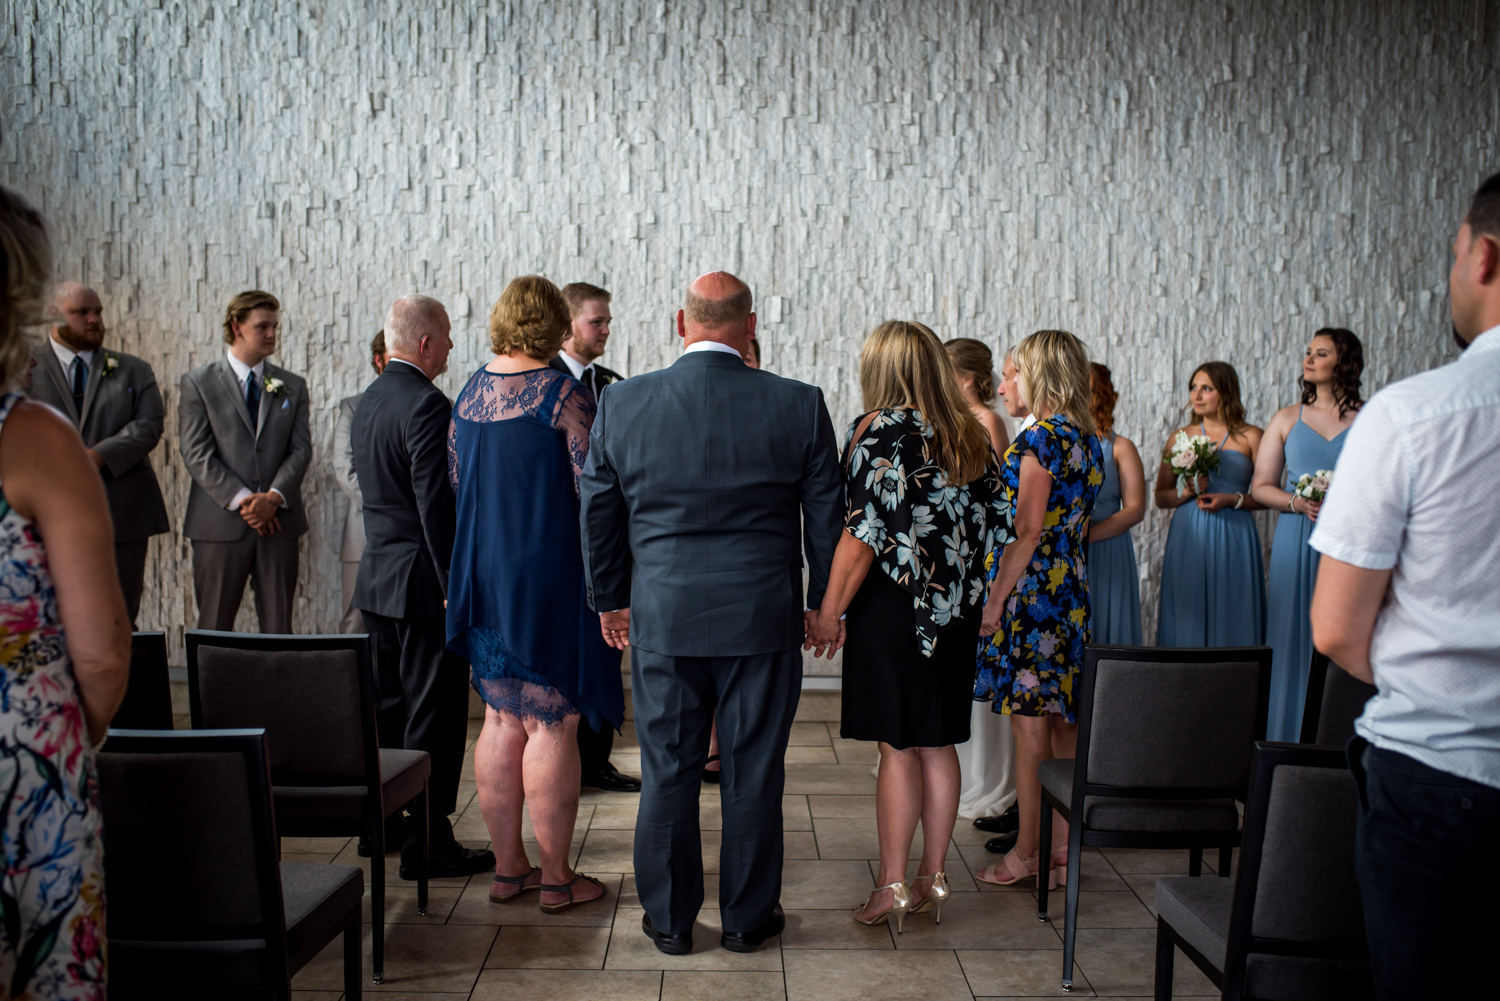 Downtown-Kamloops-Wedding-50.jpg